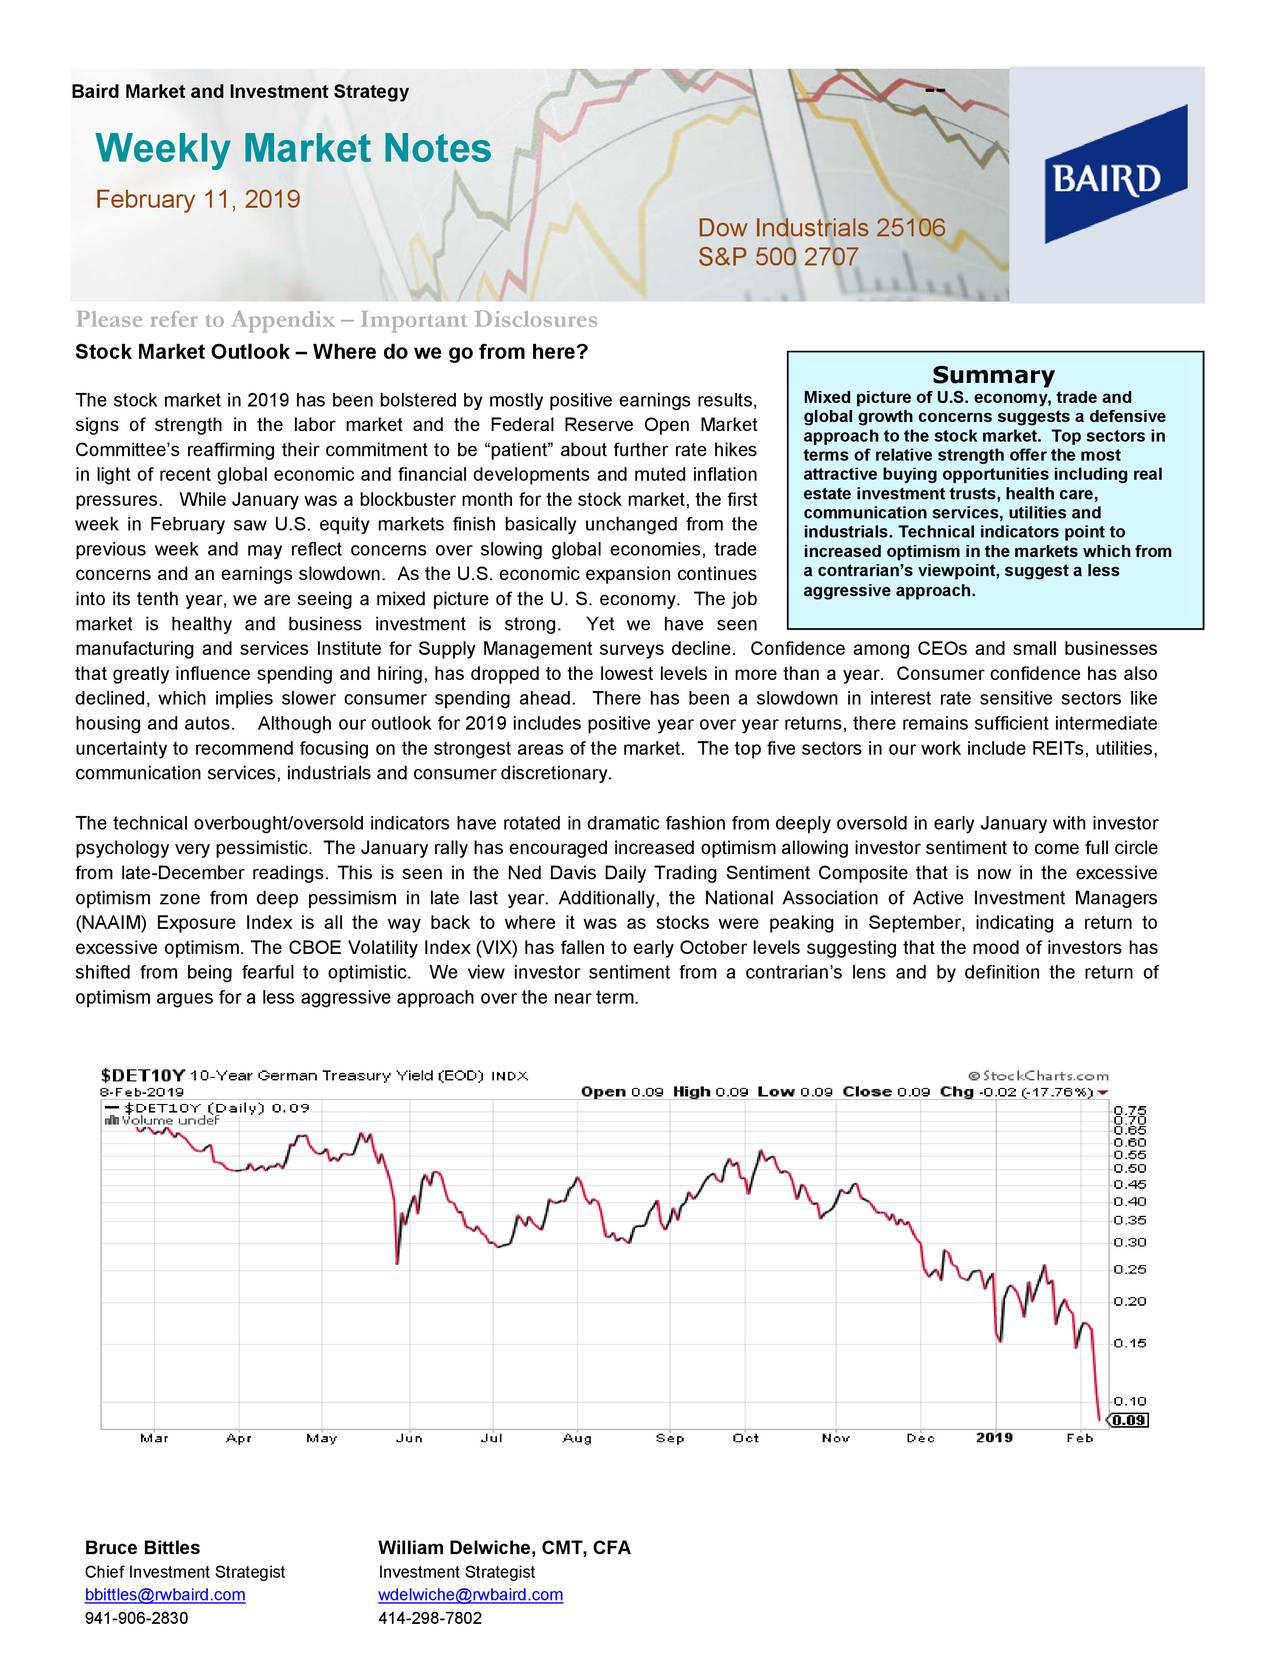 "Weekly Market Notes February 11, 2019 Dow Industrials 25106 S&P 500 2707 Please refer to Appendix – Important Disclosures Stock Market Outlook – Where do we go from here? Summary The stock market in 2019 has been bolstered by mostly positive earnings results, Mixed picture of U.S. economy, trade and signs of strength in the labor market and the Fe deral Reserve Open Market global growth concerns suggests a defensive approach to the stock market. Top sectors in Committee's reaffirming their commitment to be ""patient"" about further rate hikes terms of relative strength offer the most in light of recent global economic and financial developments and muted inflation attractive buying opportunities including real pressures. While January was a blockbuster month for the stock m arket, the first estate investment trusts, health care, communication services, utilities and week in February saw U.S. equity markets finish basically unchanged from the industrials. Technical indicators point to previous week and may reflect concerns over slowing global economies, trade increased optimism in the markets which from concerns and an earnings slowdown. As the U.S. economic expansion continues a contrarian's viewpoint, suggest a less into its tenth year, we are seeing a mixed picture of the U. S. economy. The job aggressive approach. market is healthy and business investment is strong. Yet we have seen manufacturing and services Institute for Supply Management surveys decline. Confidence among CEOs and small businesses that greatly influence spending and hiring, has dropped to the lowest levels in more than a year. Consumer confidence has also declined, which implies slower consumer spending ahead. There has been a slowdown in interest rate sensitive sectors like housing and autos. Although our outlook for 2019 includes positive year over year returns, there remains sufficient intermediate uncertainty to recommend focusing on the strongest areas of the market. The top five sectors in our work include REITs, utilities, communication services, industrials and consumer discretionary. The technical overbought/oversold indicators have rotated in dramatic fashion from deeply oversold in early January with investor psychology very pessimistic. The January rally has encouraged increased optimism allowing investor sentiment to come full circle from late-December readings. This is seen in the Ned Davis Daily Trading Sentiment Composite that is now in the excessive optimism zone from deep pessimism in late last year . Additionally, the National Association of Active Investment Managers (NAAIM) Exposure Index is all the way back to where it was as stocks were peaking in September , indicating a return to excessive optimism. The CBOE Volatility Index (VIX) has fallen to early October levels suggesting that the mood of investors has shifted from being fearful to optimistic. We view investor sentiment from a contrarian's lens and by definition the return of optimism argues for a less aggressive approach over the near term. Bruce Bittles William Delwiche, CMT, CFA Chief Investment Strategist Investment Strategist bbittles@rwbaird.com wdelwiche@rwbaird.com 941-906-2830 414-298-7802"